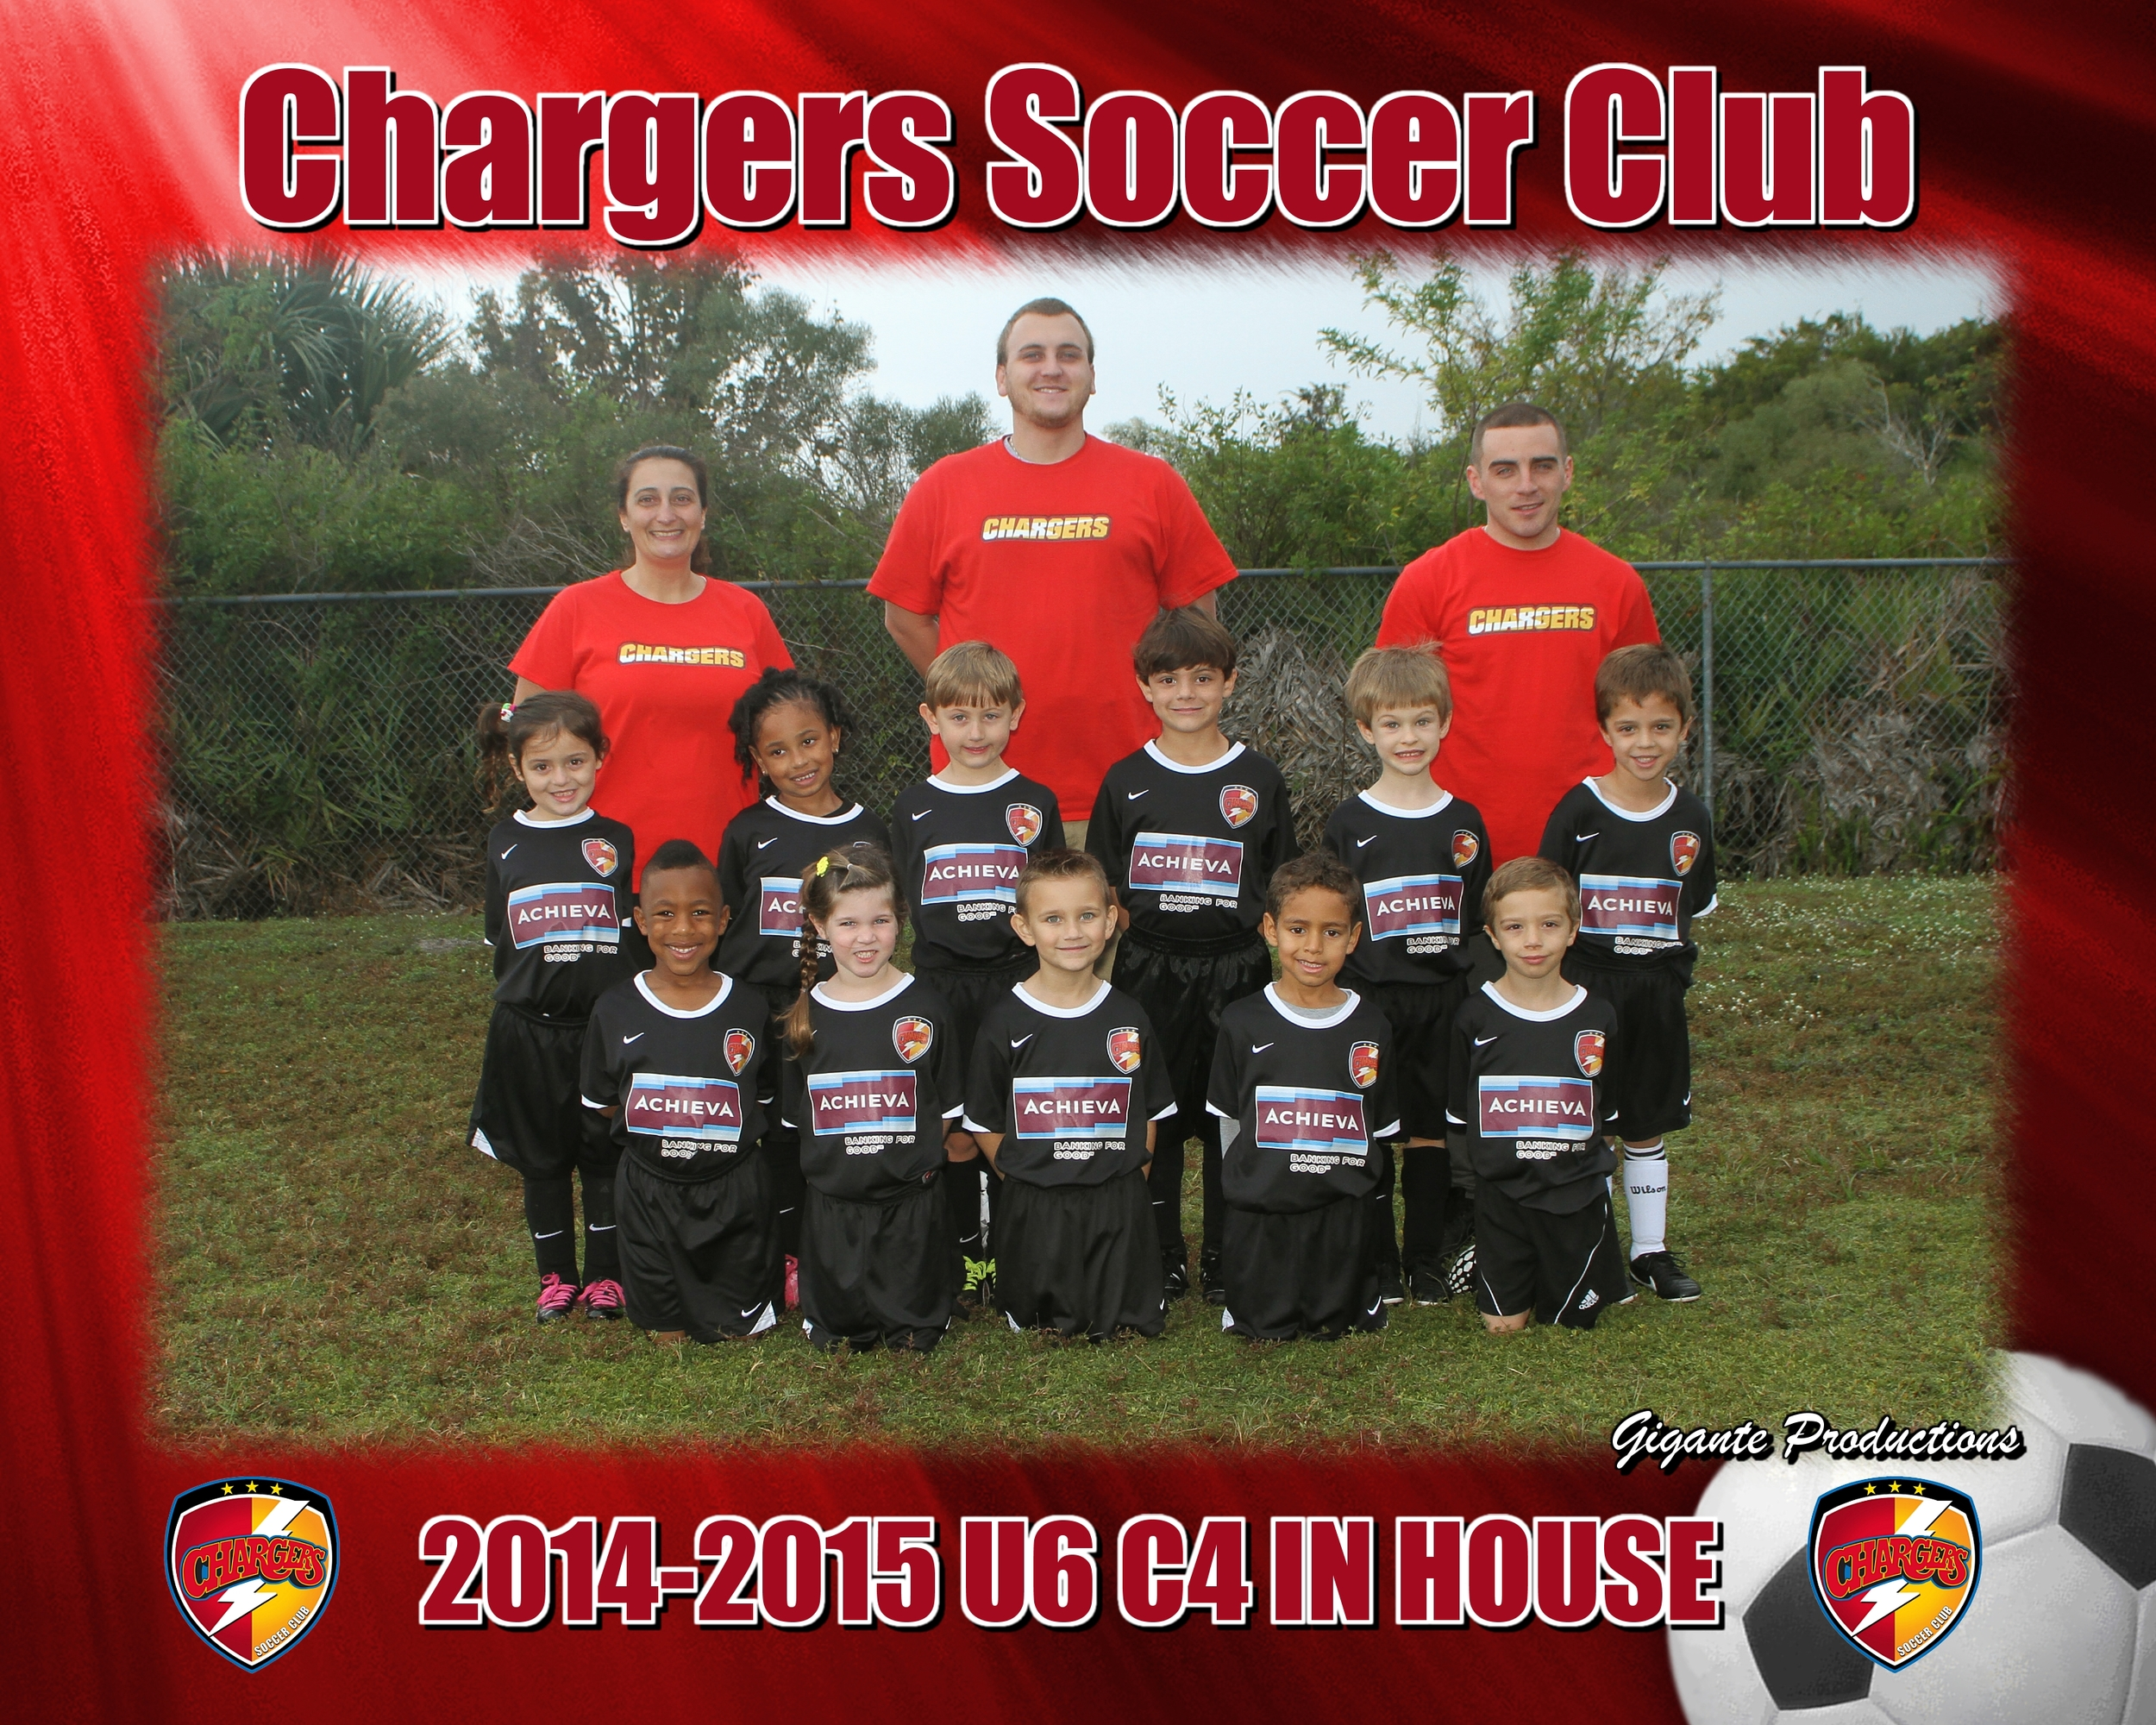 Chargers Soccer.jpg